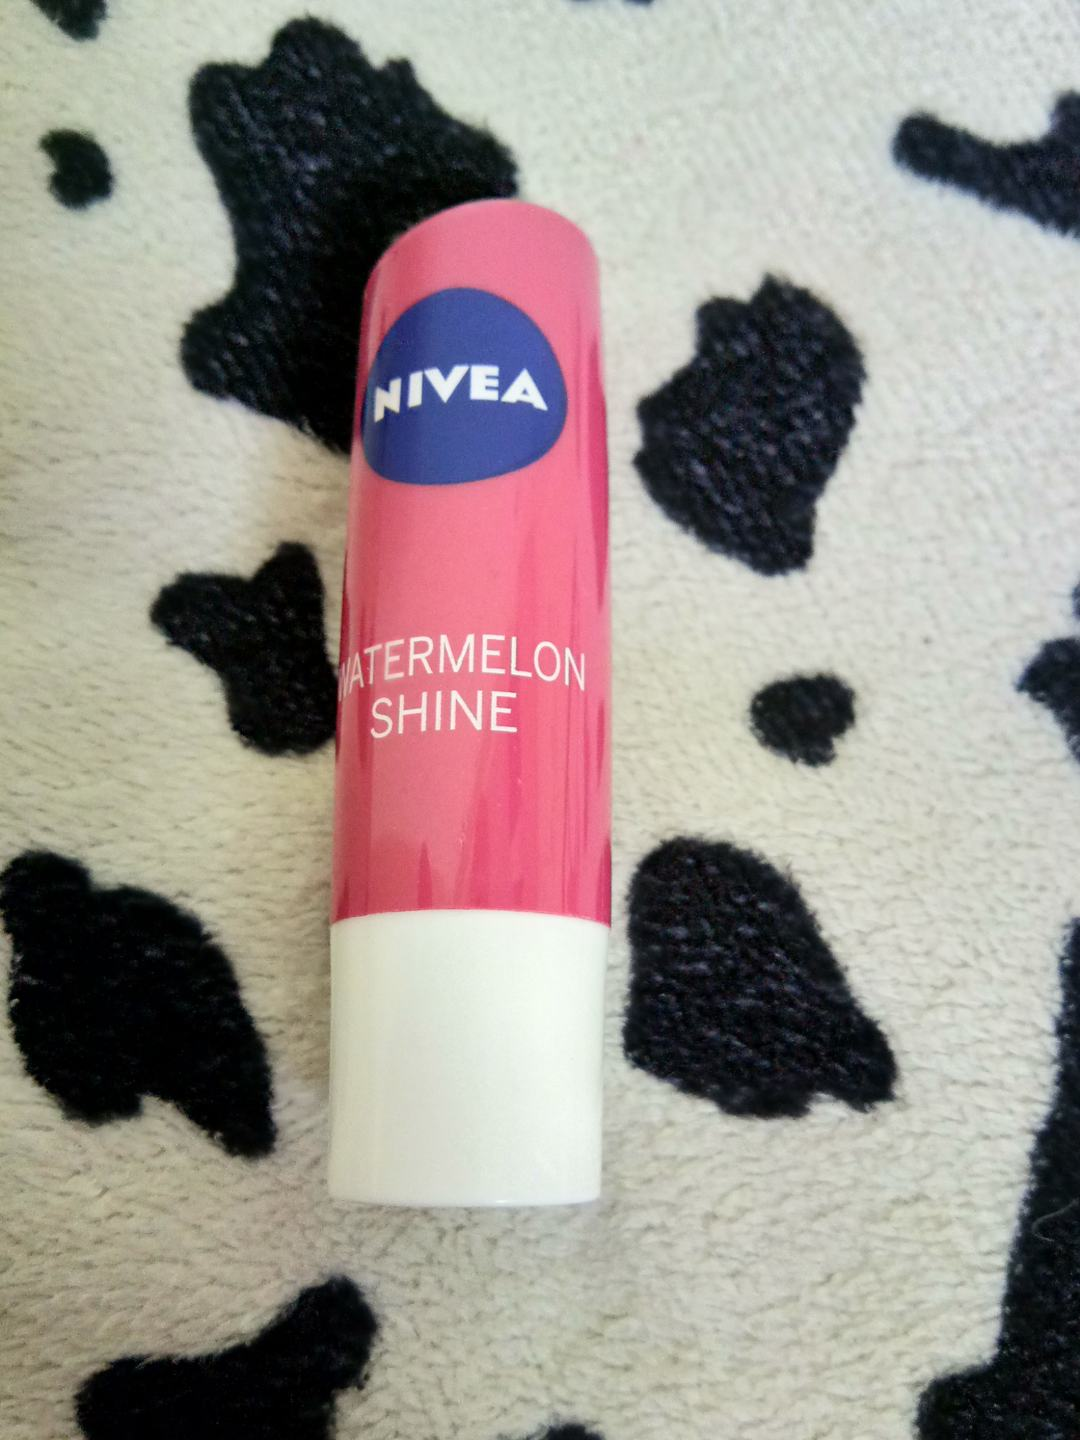 NIVEA WATERMELON SHINE CARING LIP BALM